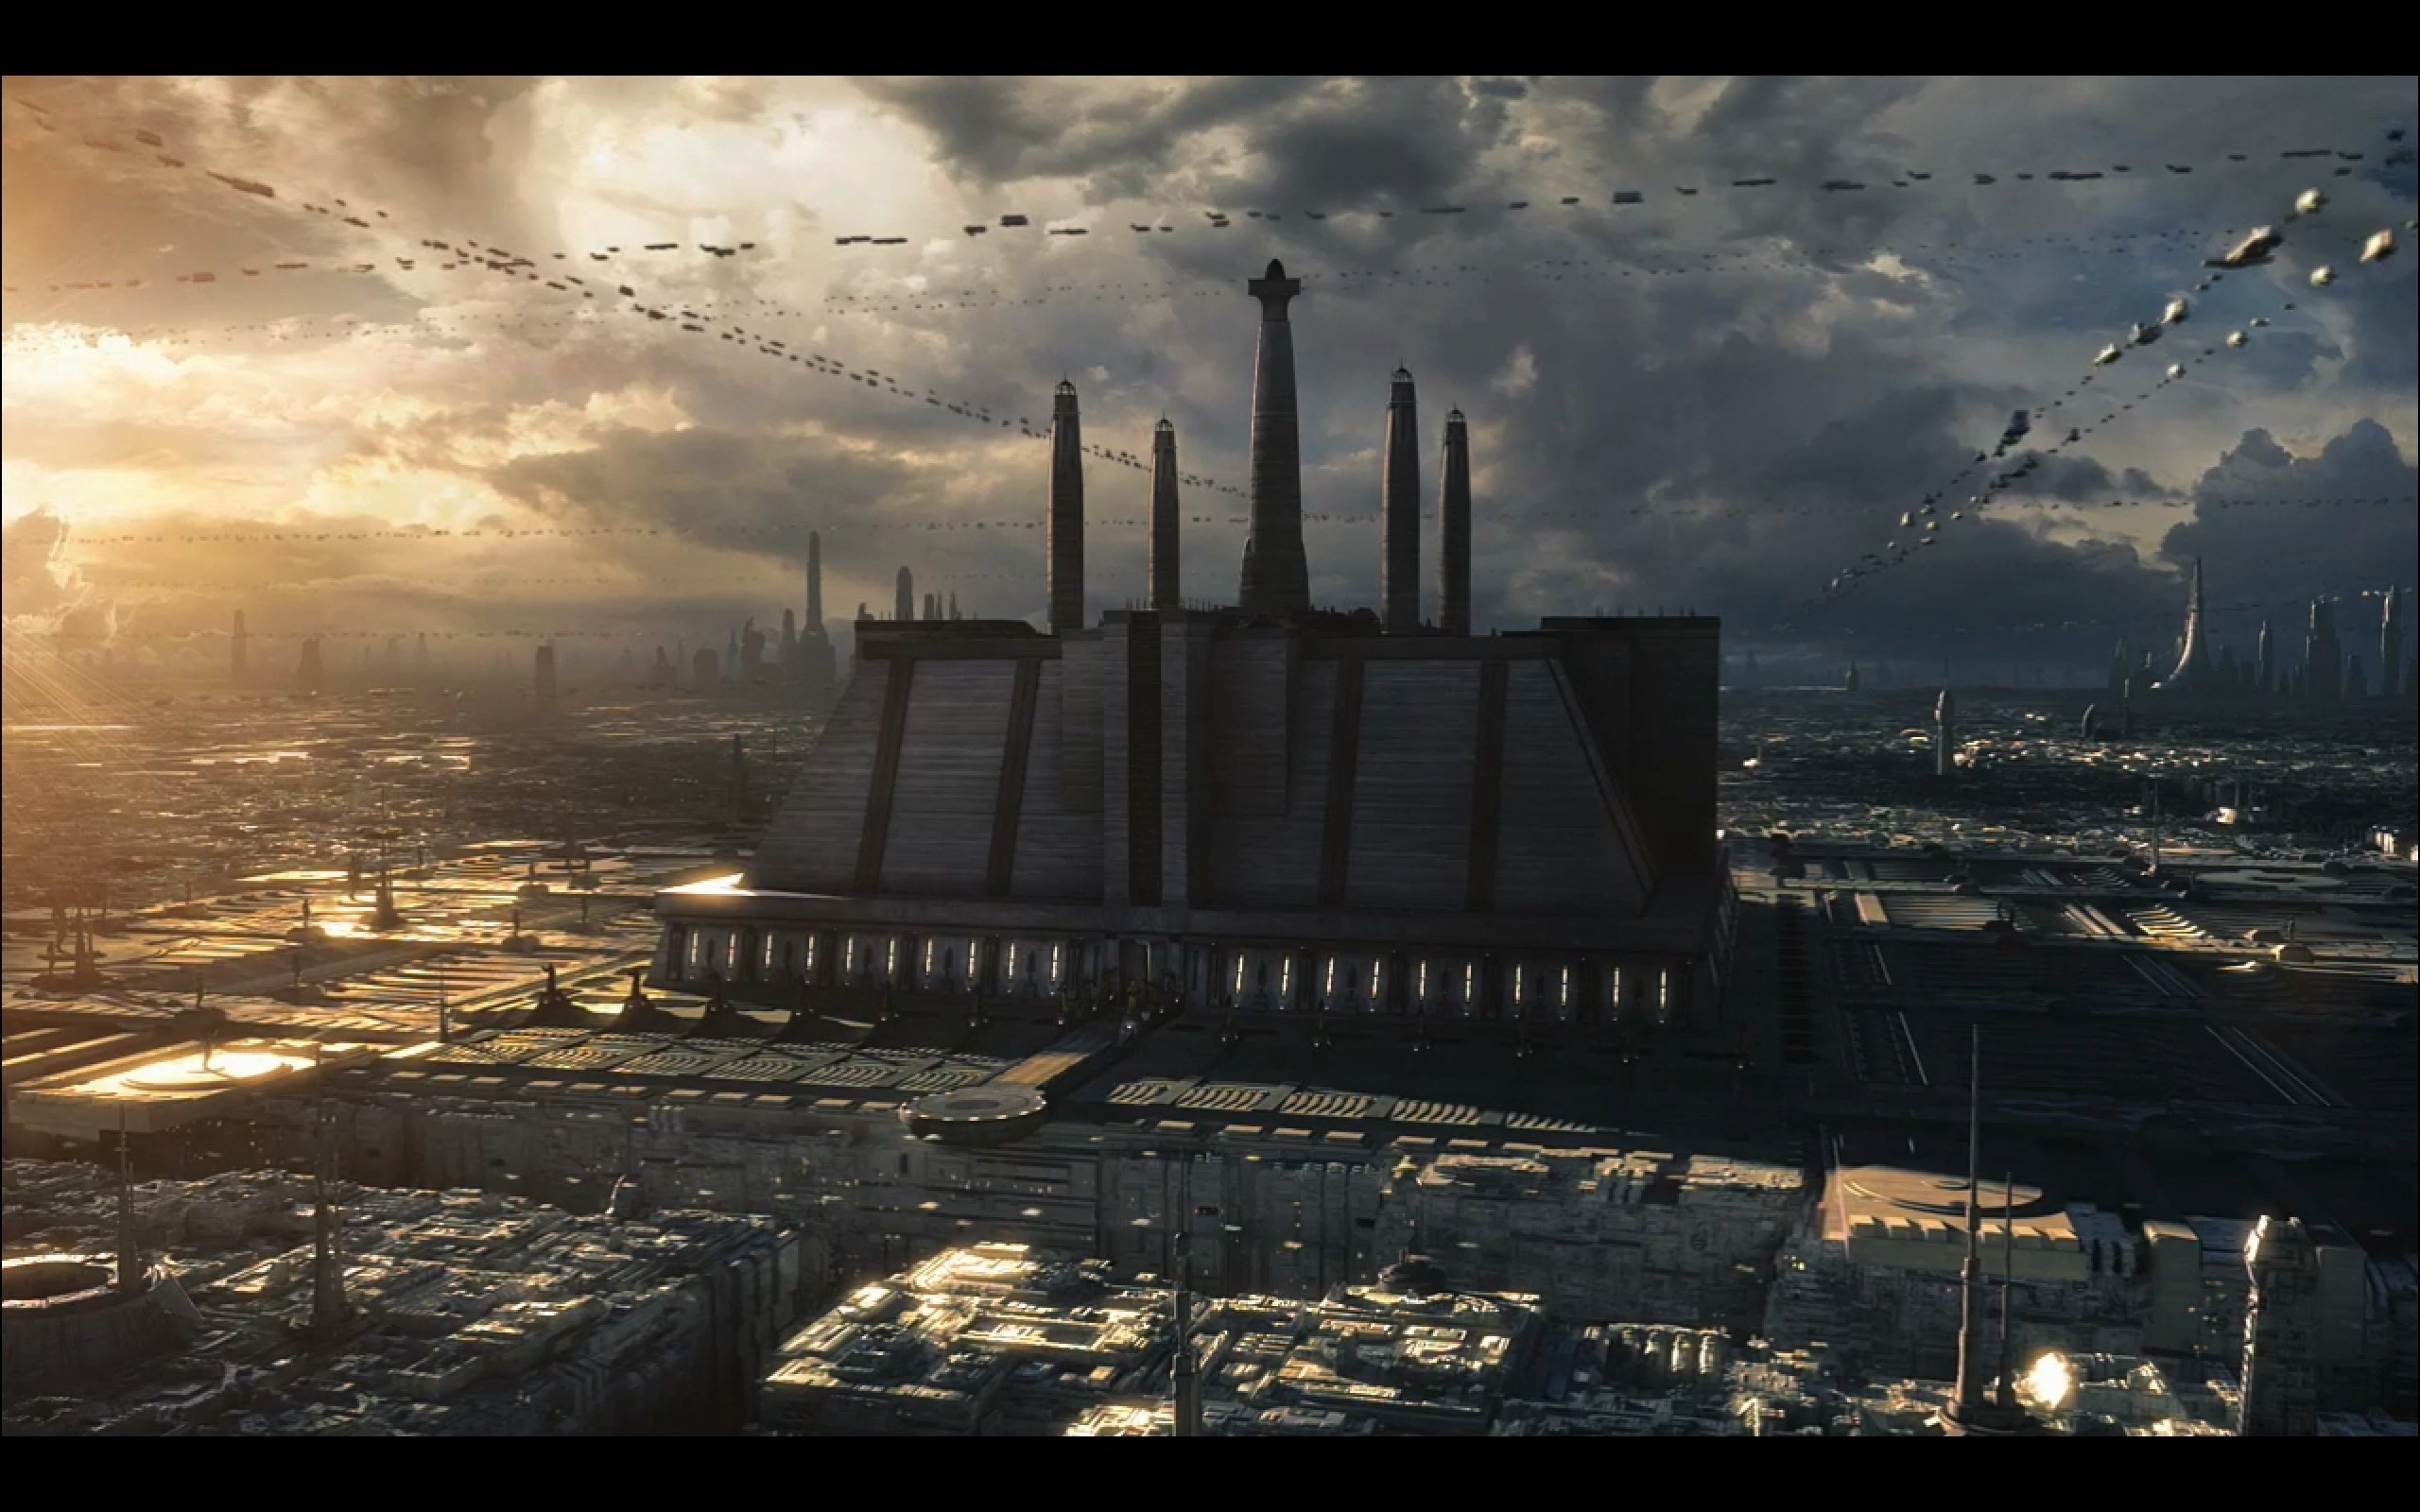 … Perfect Star Wars Coruscant Wallpaper HD Wallpapers of Nature- Full HD  1080p Desktop Backgrounds for